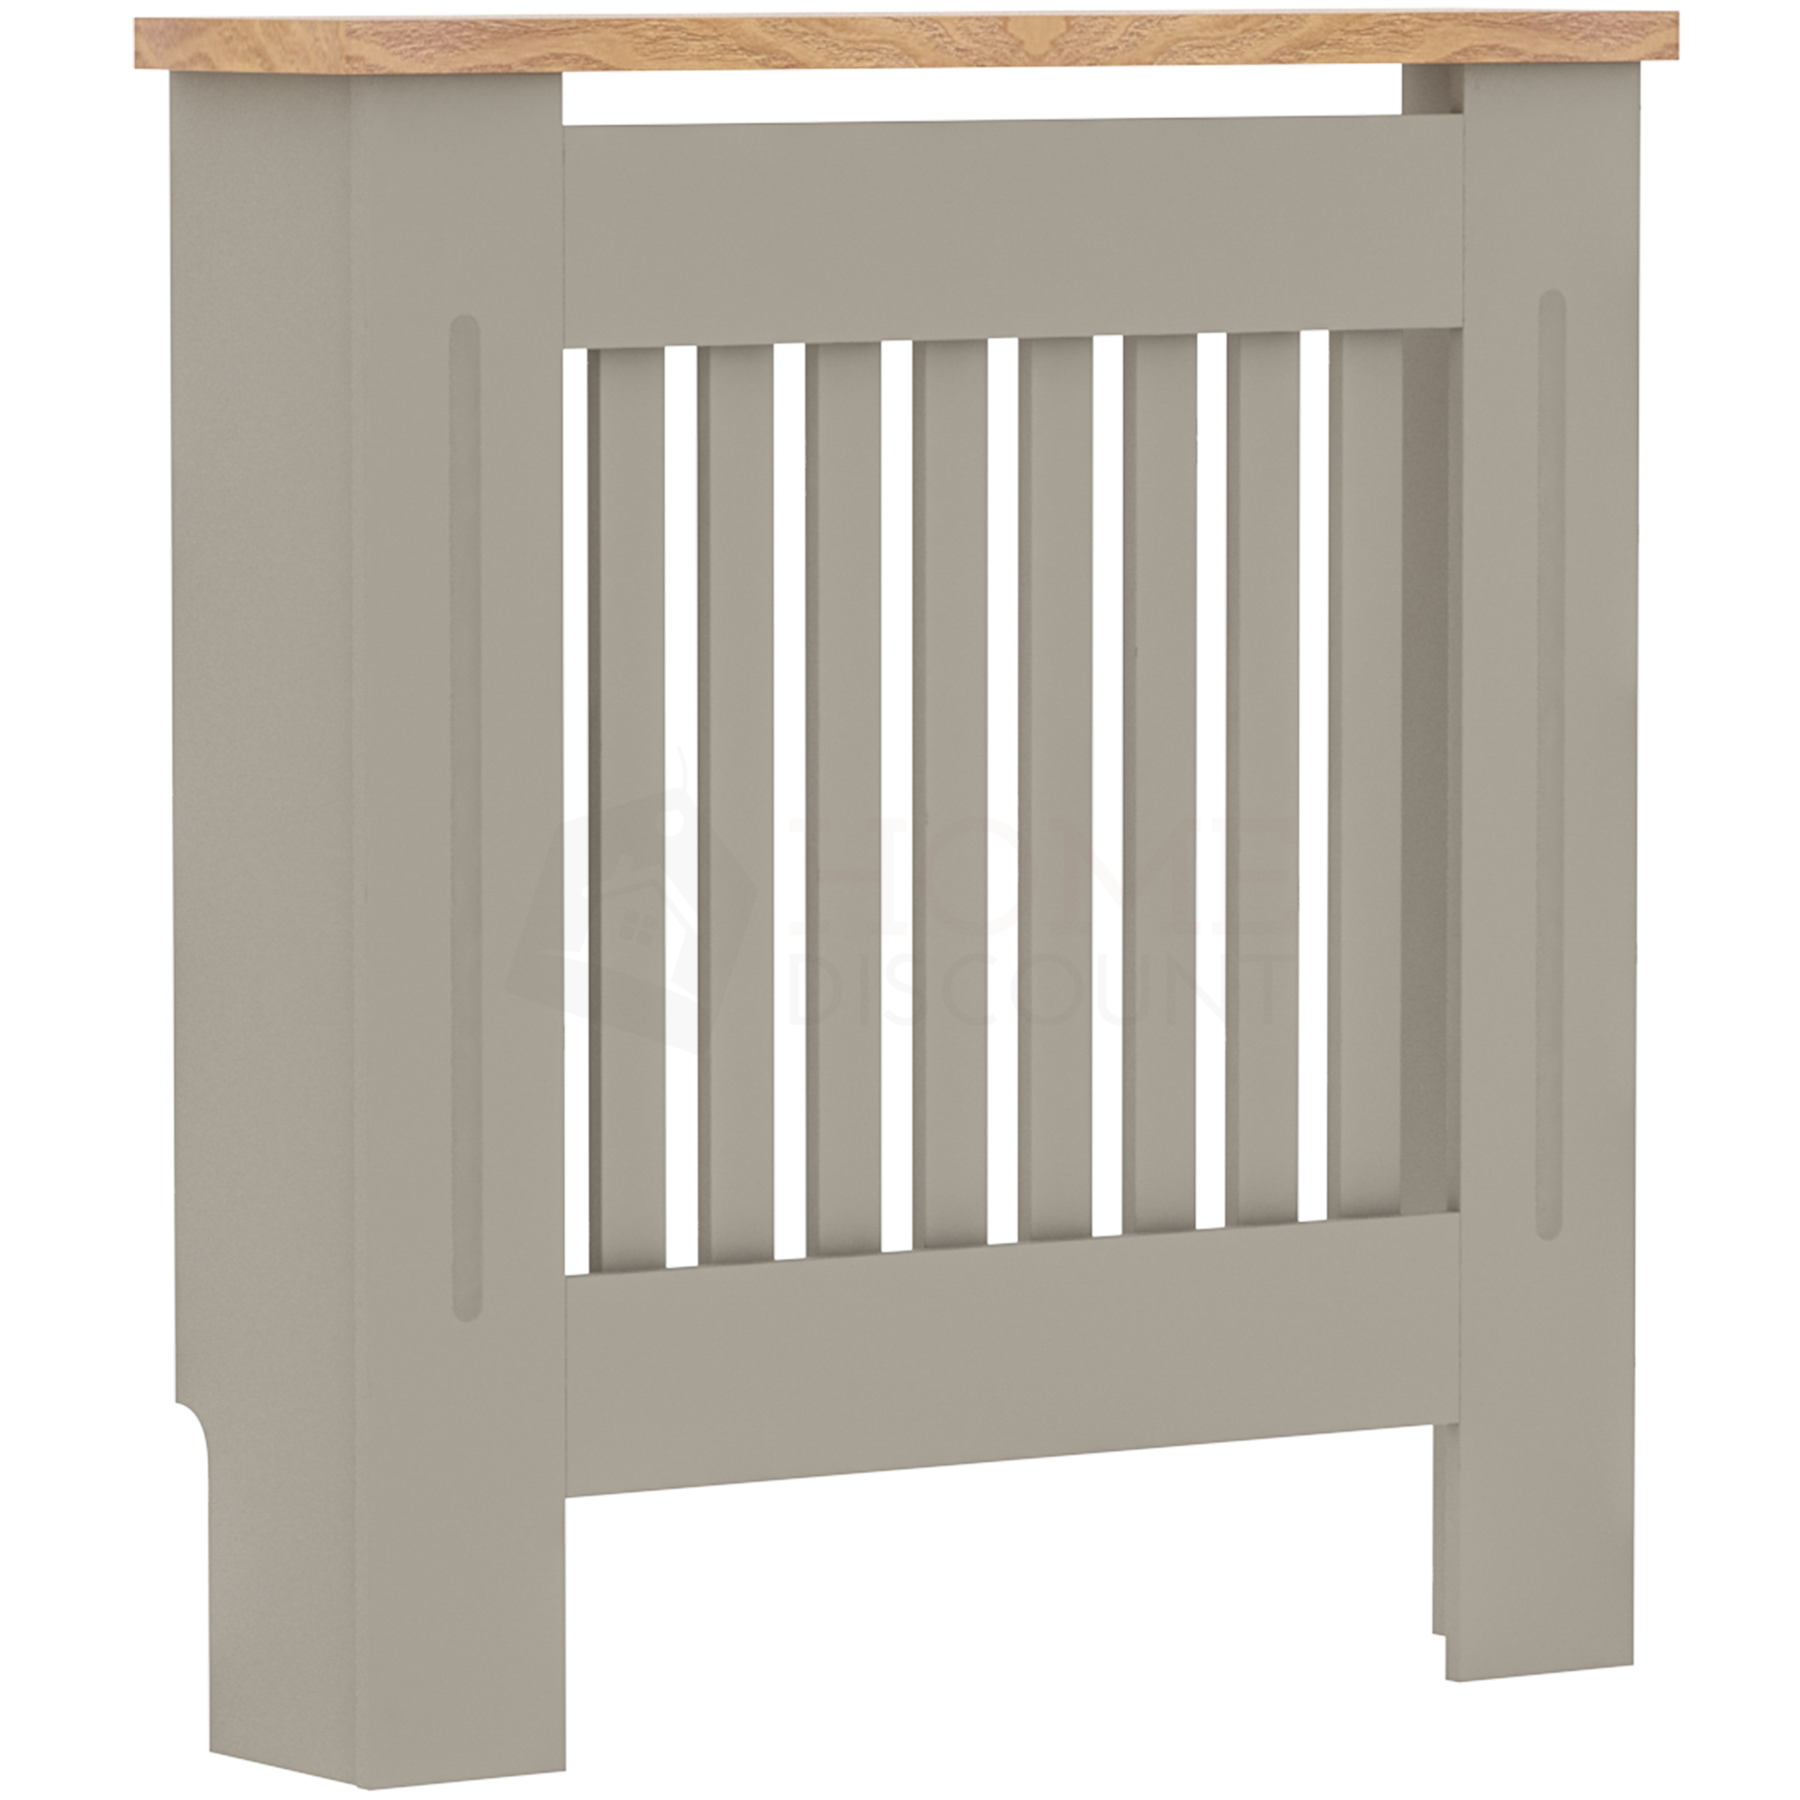 thumbnail 41 - Radiator Cover White Unfinished Modern Traditional Wood Grill Cabinet Furniture